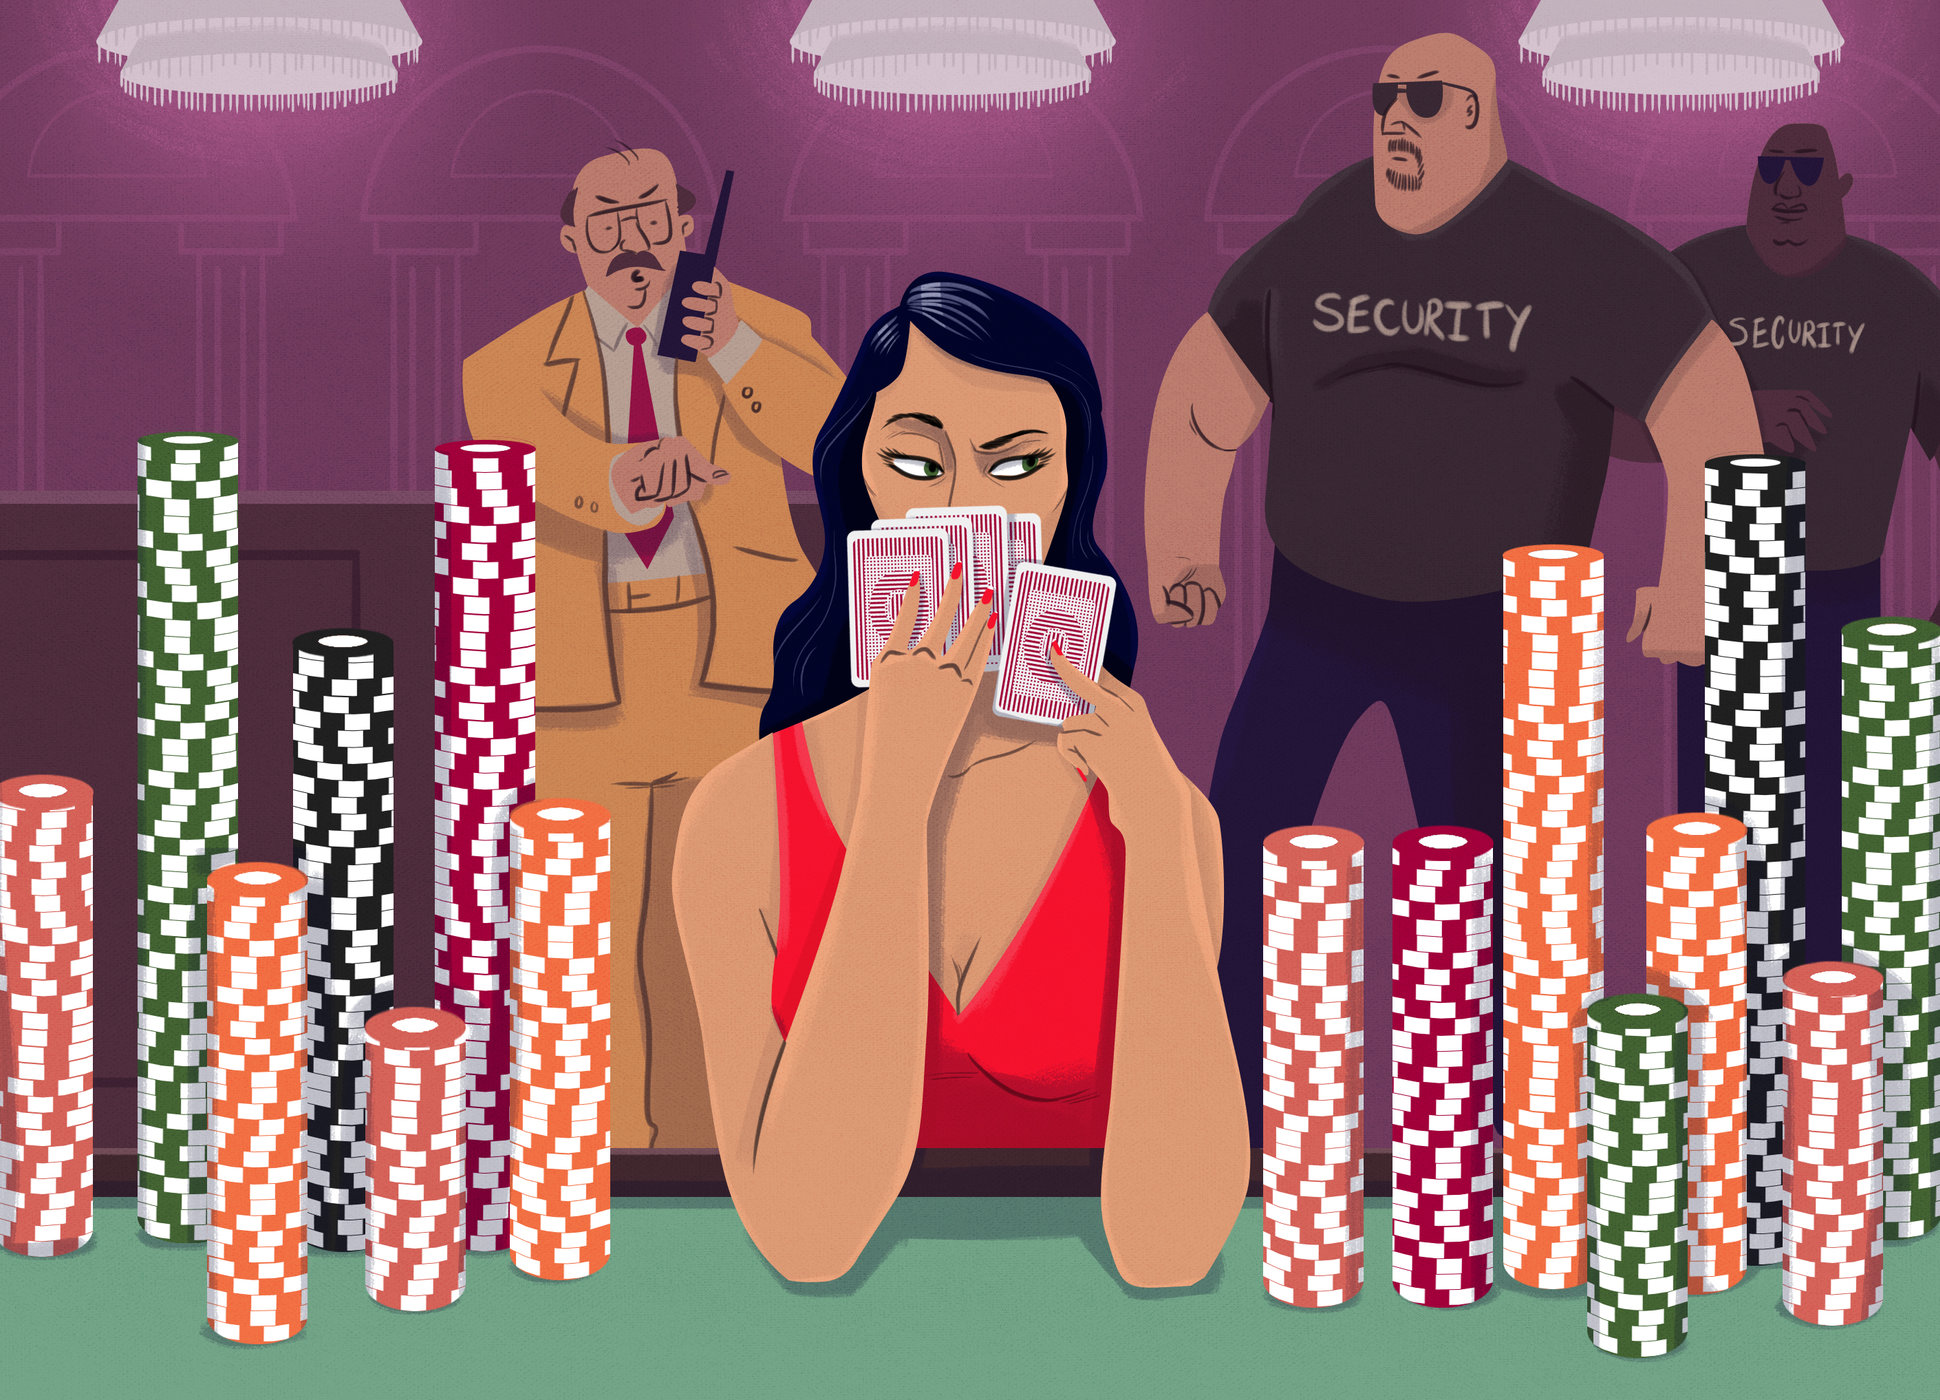 Is Card Counting in Blackjack Illegal?